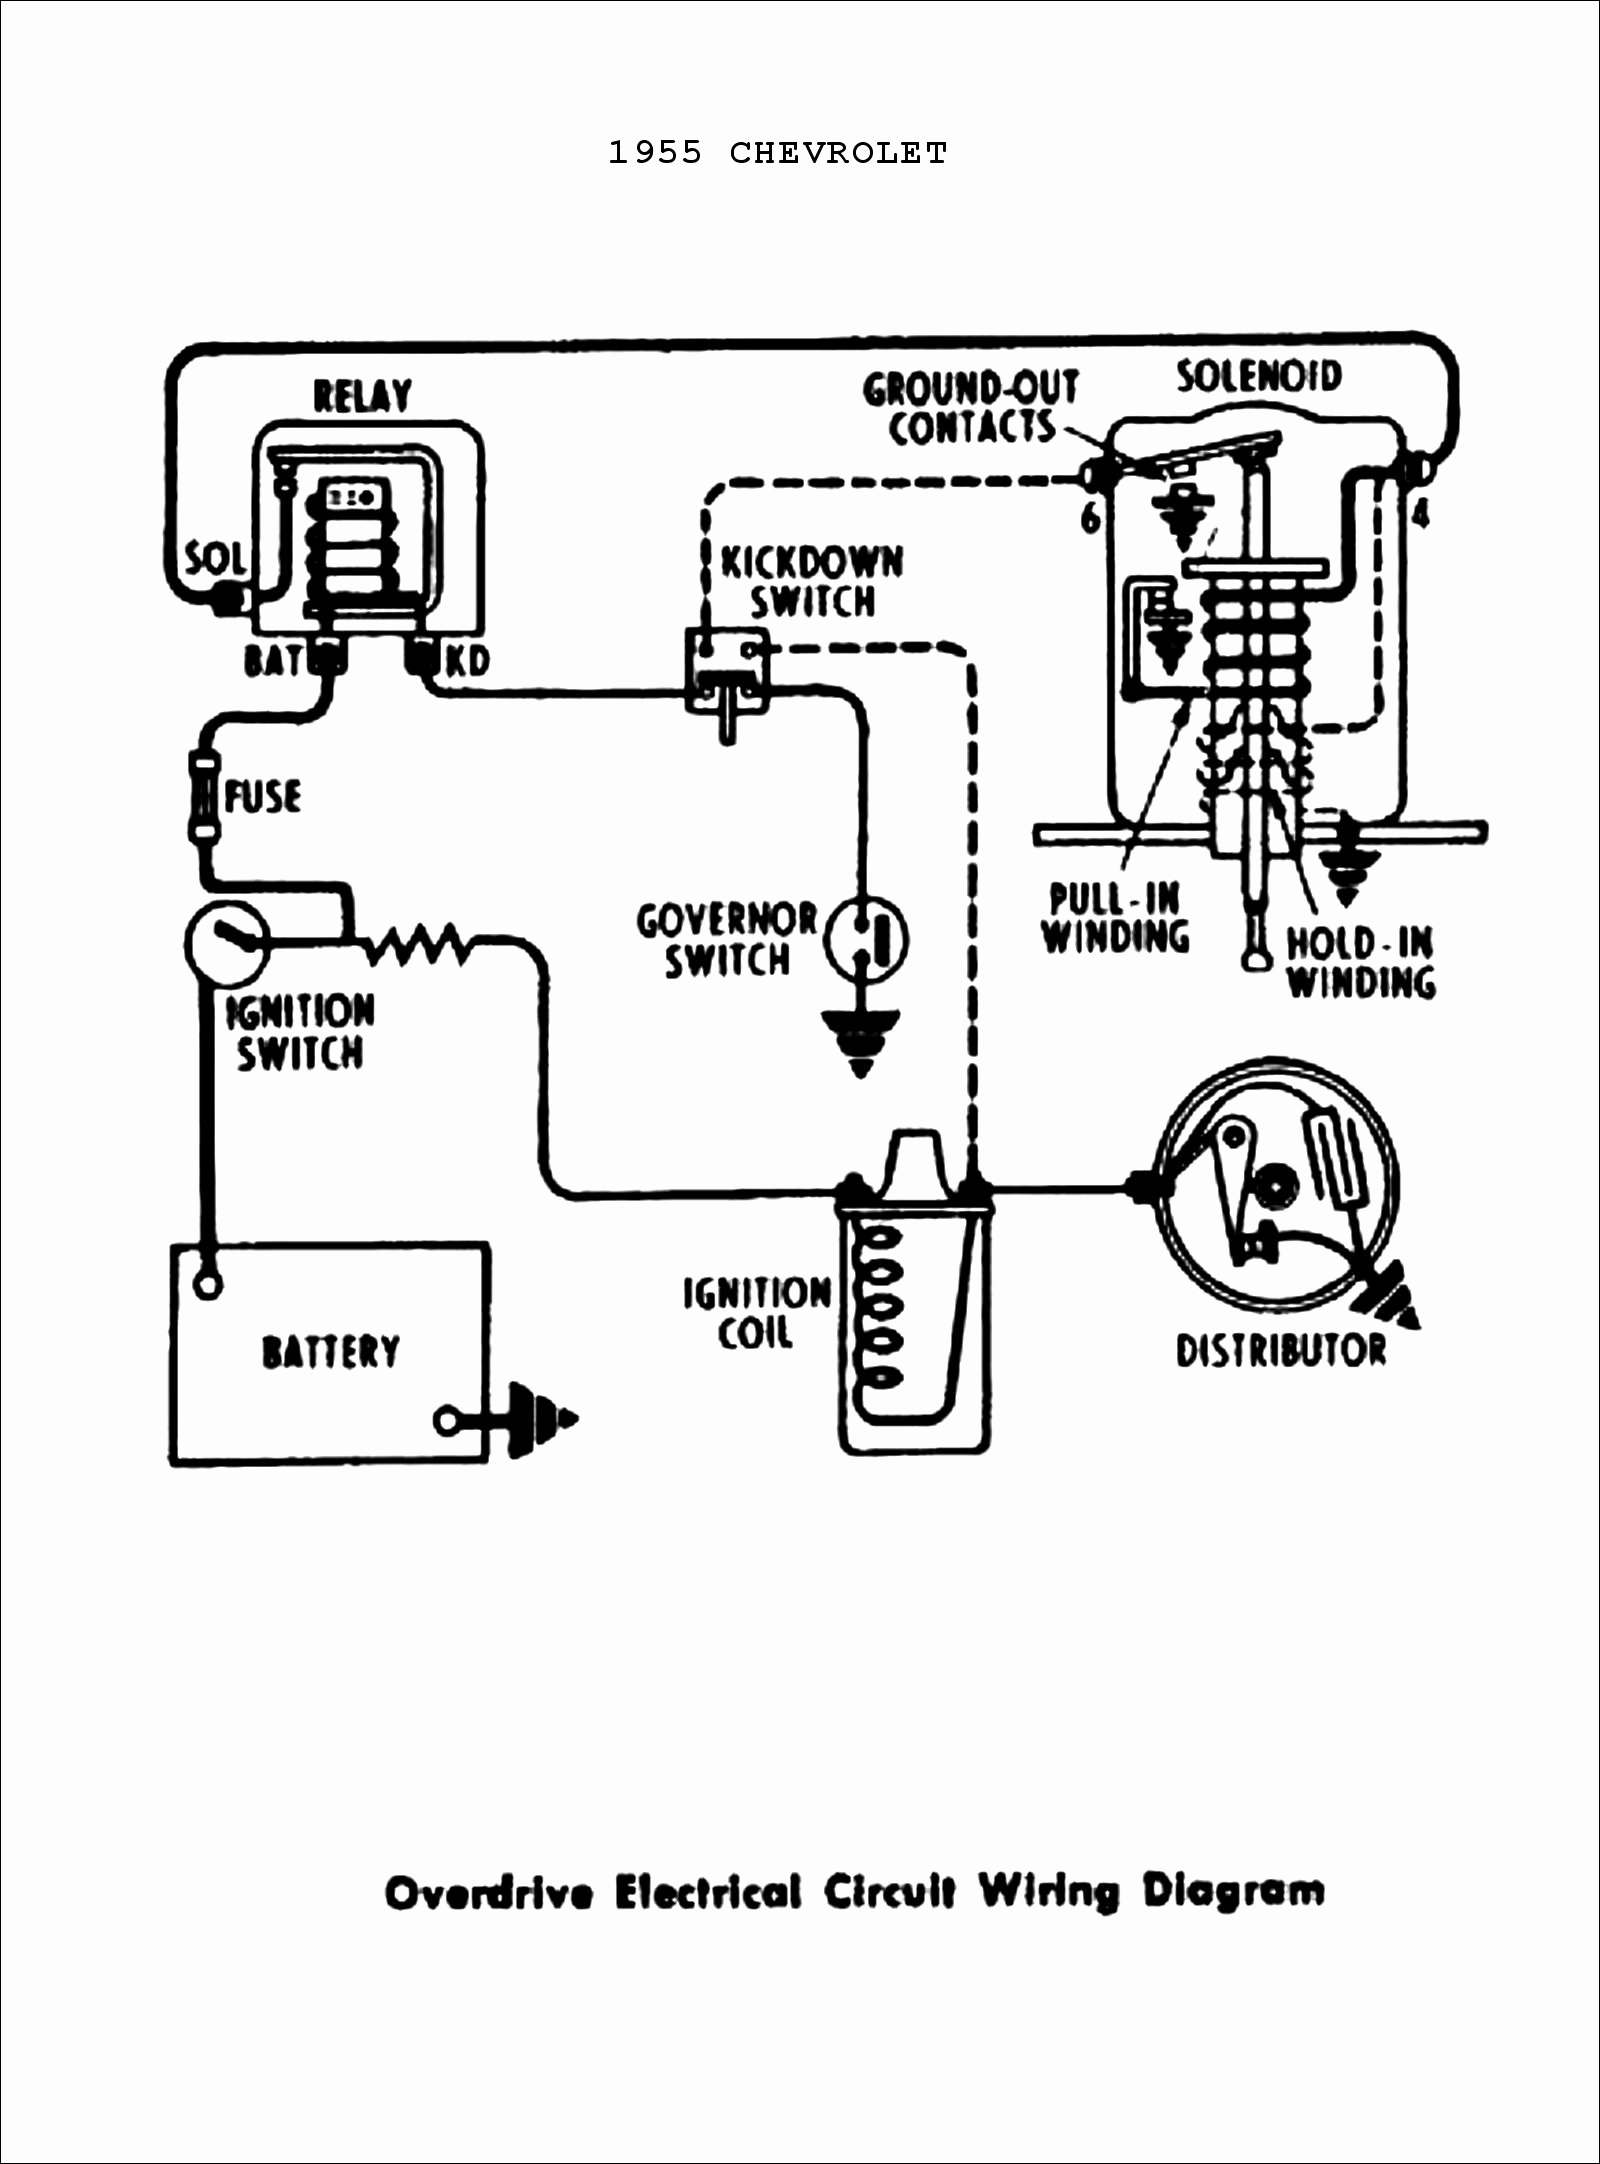 1975 Gm Coil Wiring | Wiring Diagram Oldsmobile Points Distributor Wiring Diagram on